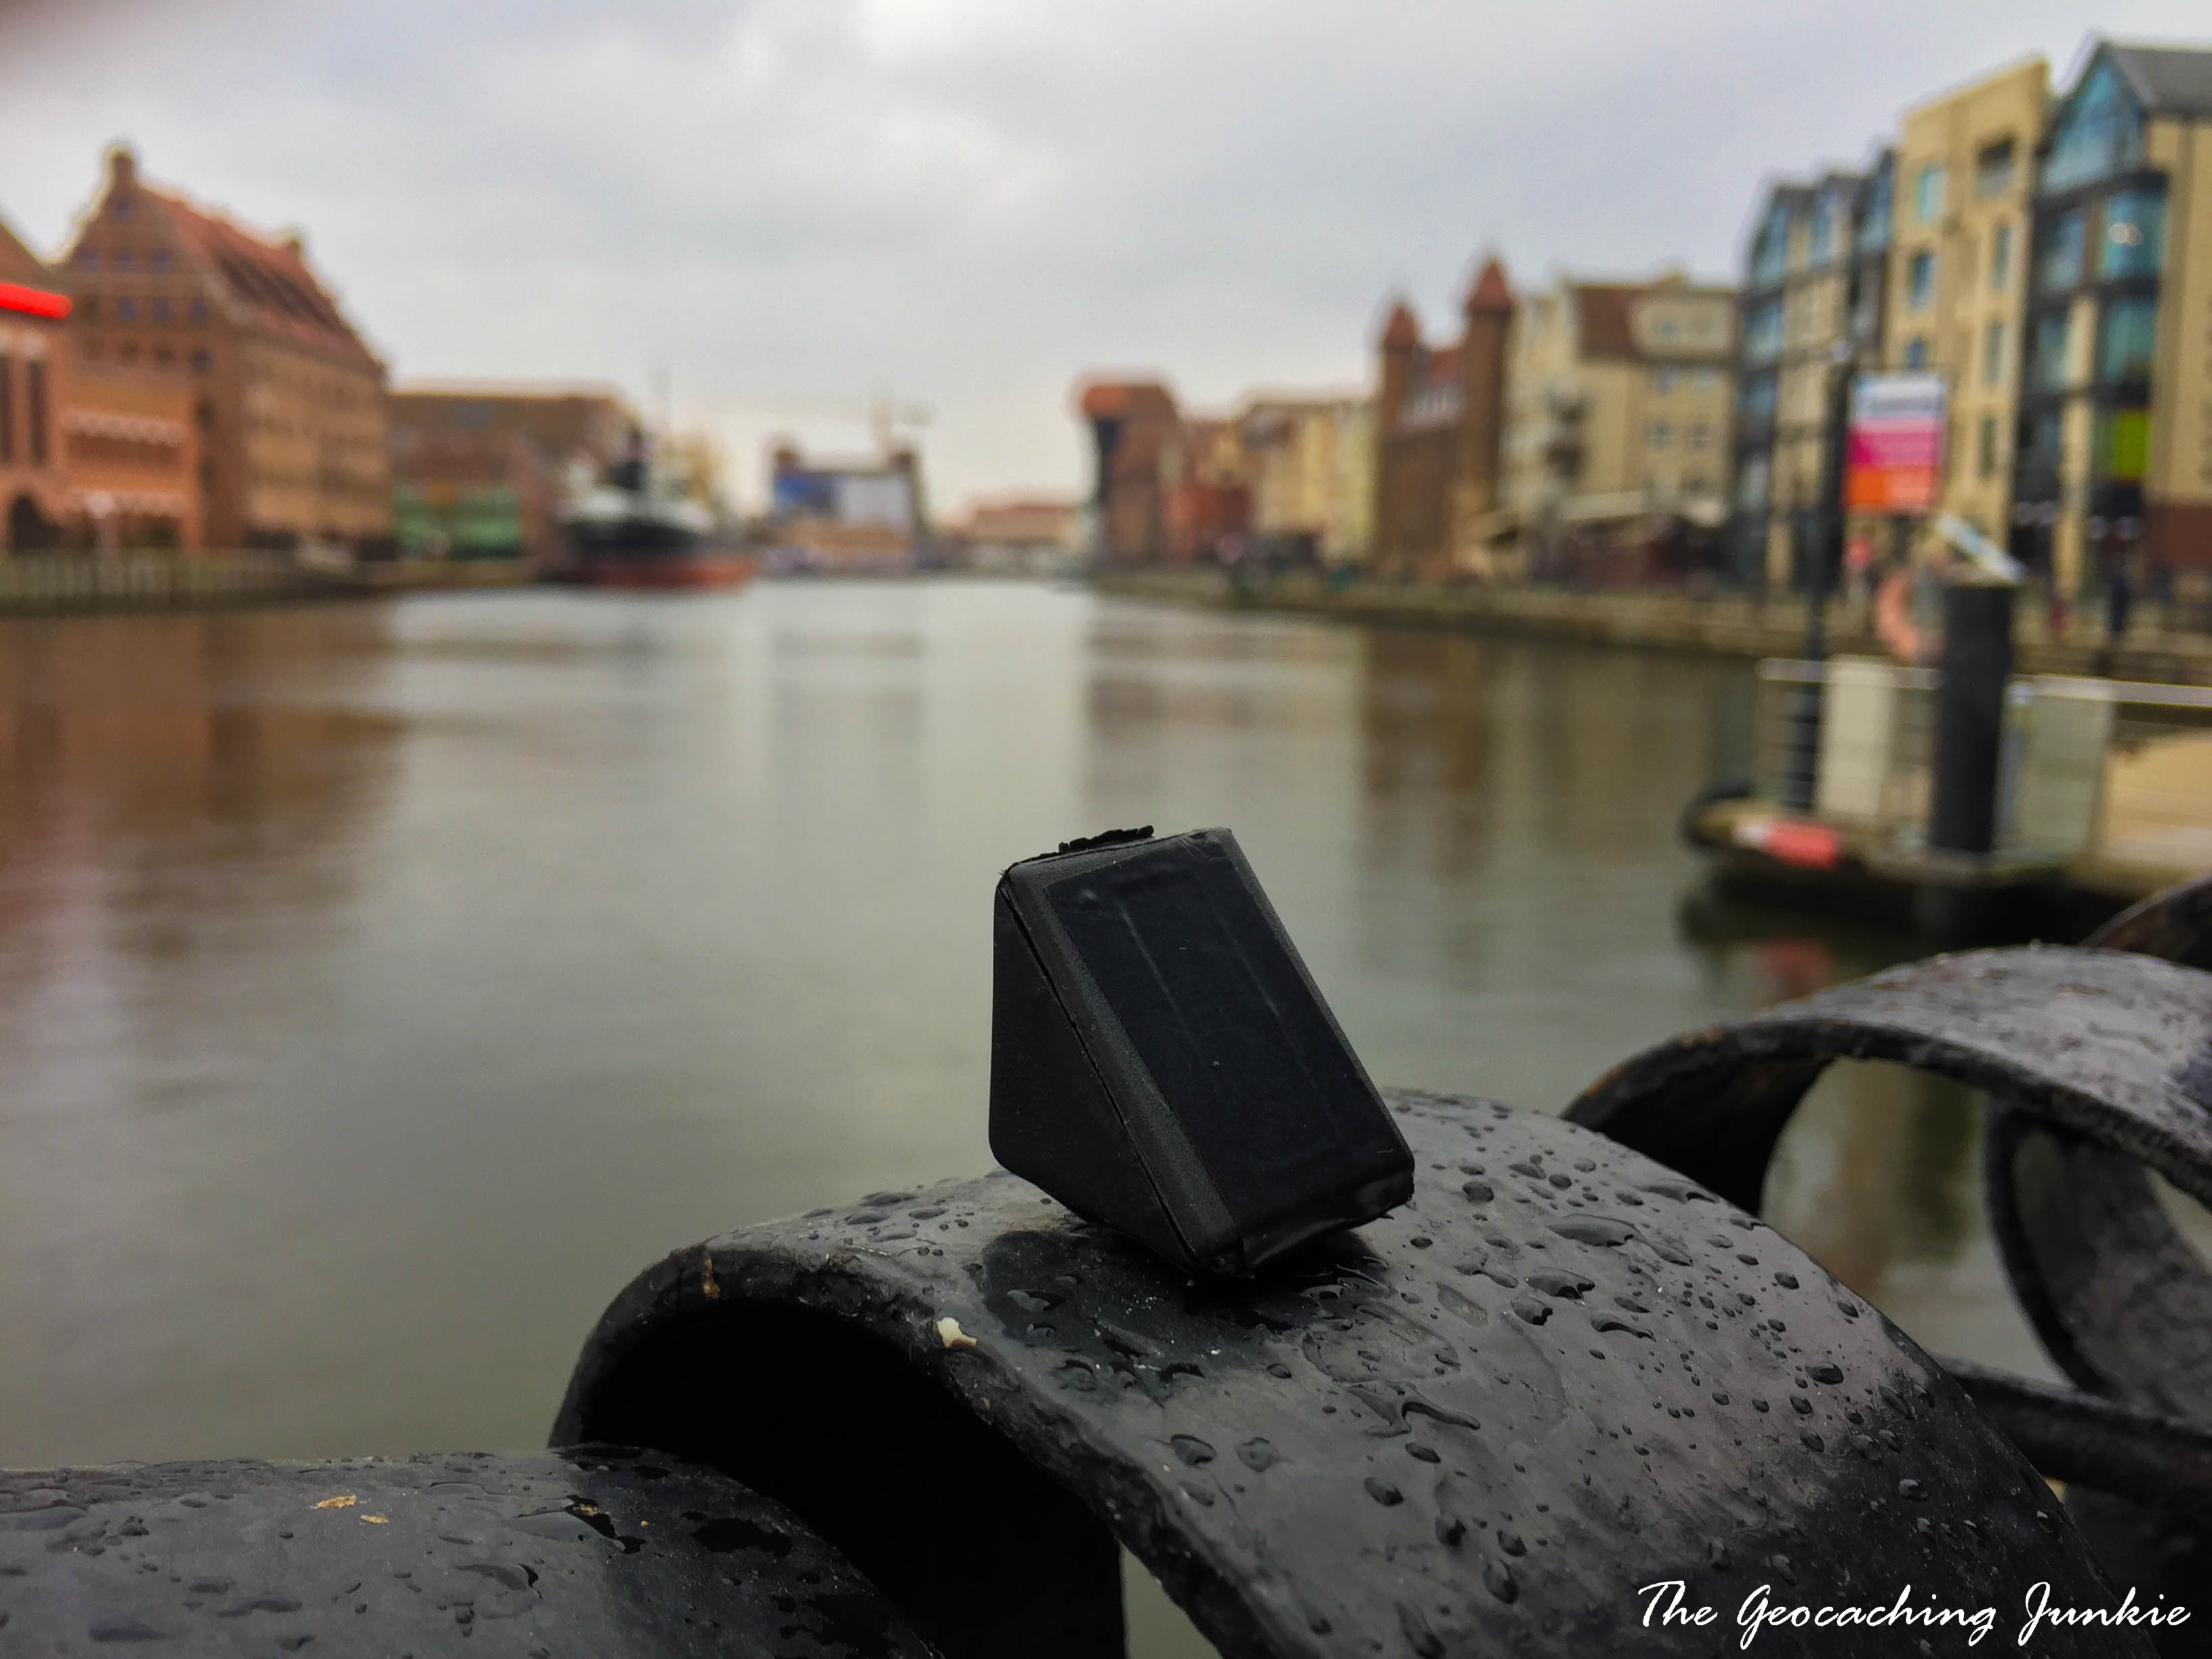 The Geocaching Junkie: Geocaching in Gdansk